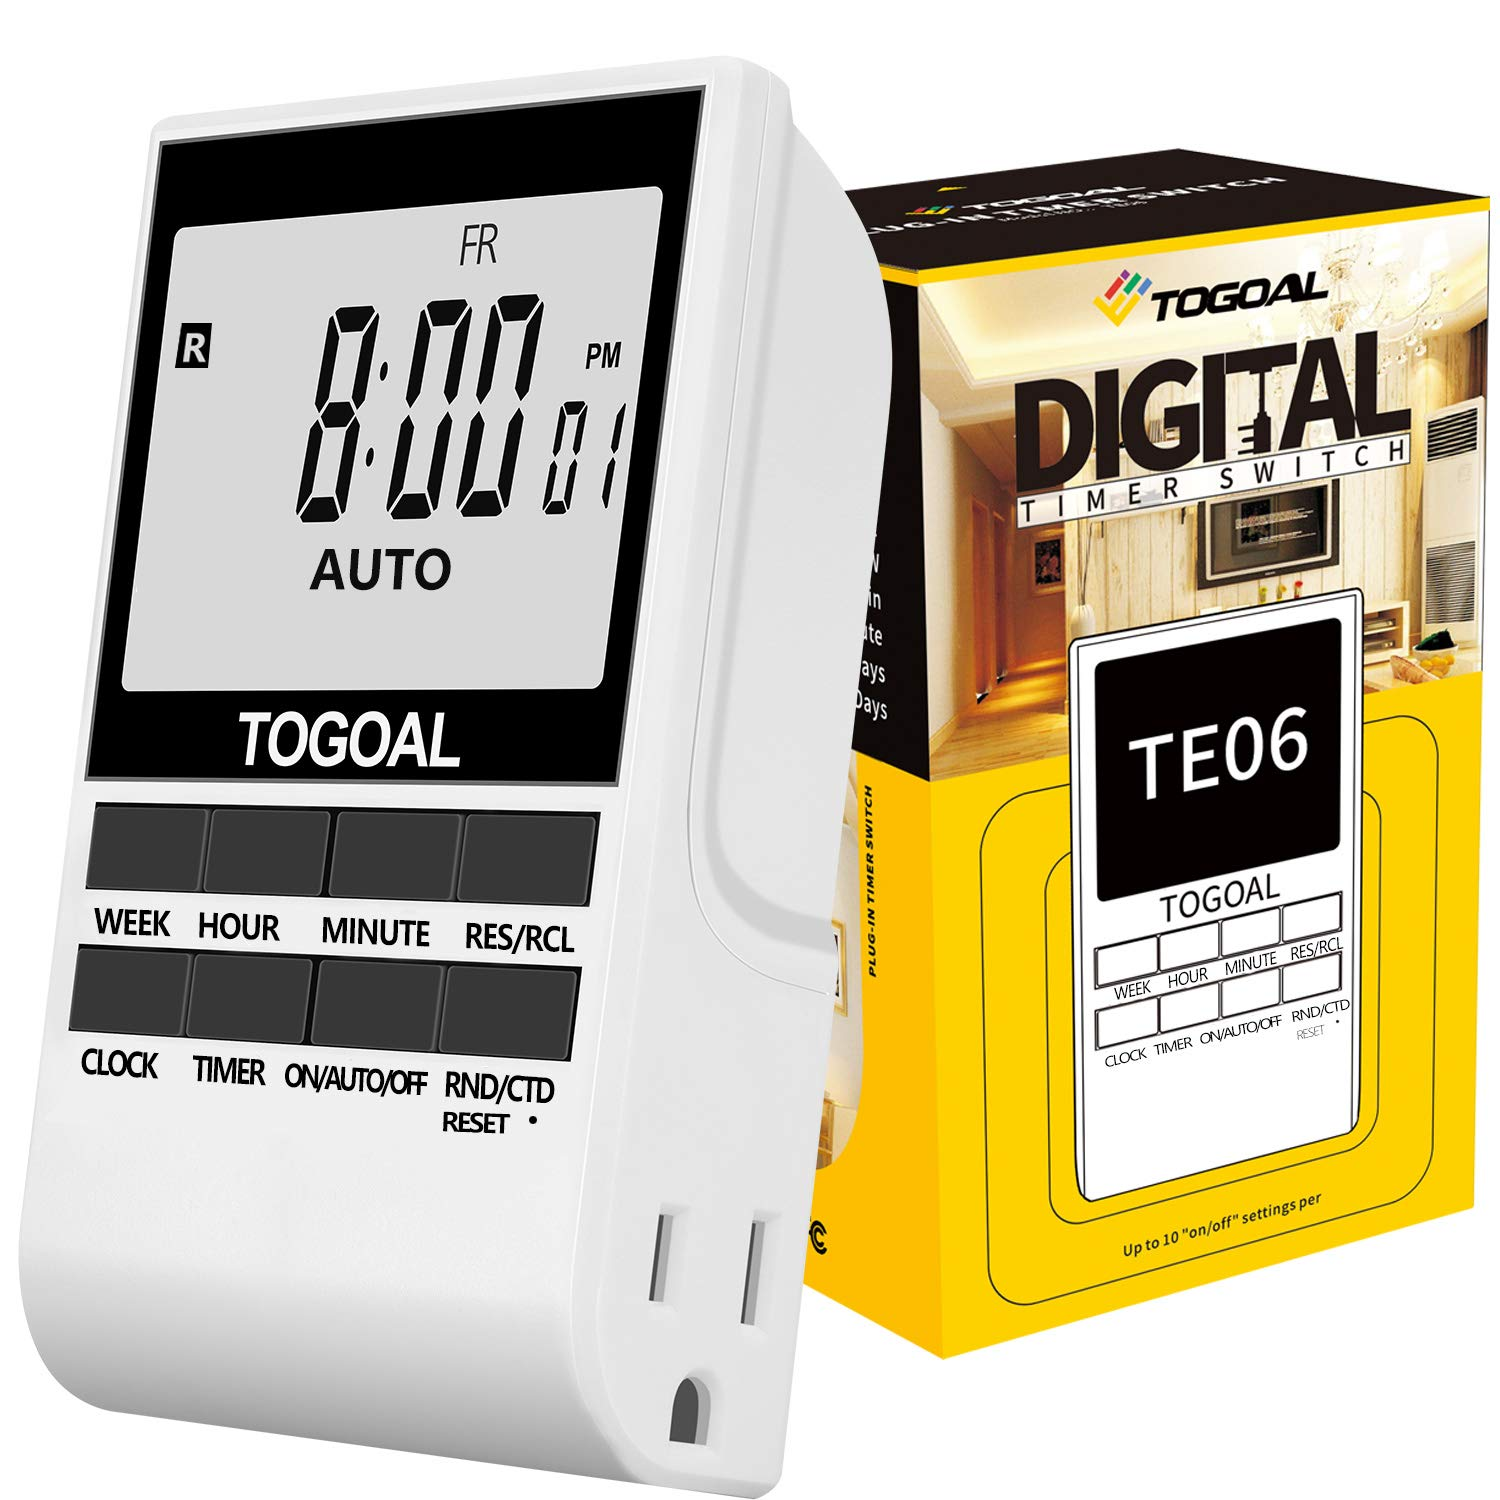 TOGOAL Outlet Timer Digital Light Plug with Dual Sided Outlets, Countdown and Random Setting, 24/7 Programmable (15A/1800W,1 Pack, TE06) by TOGOAL